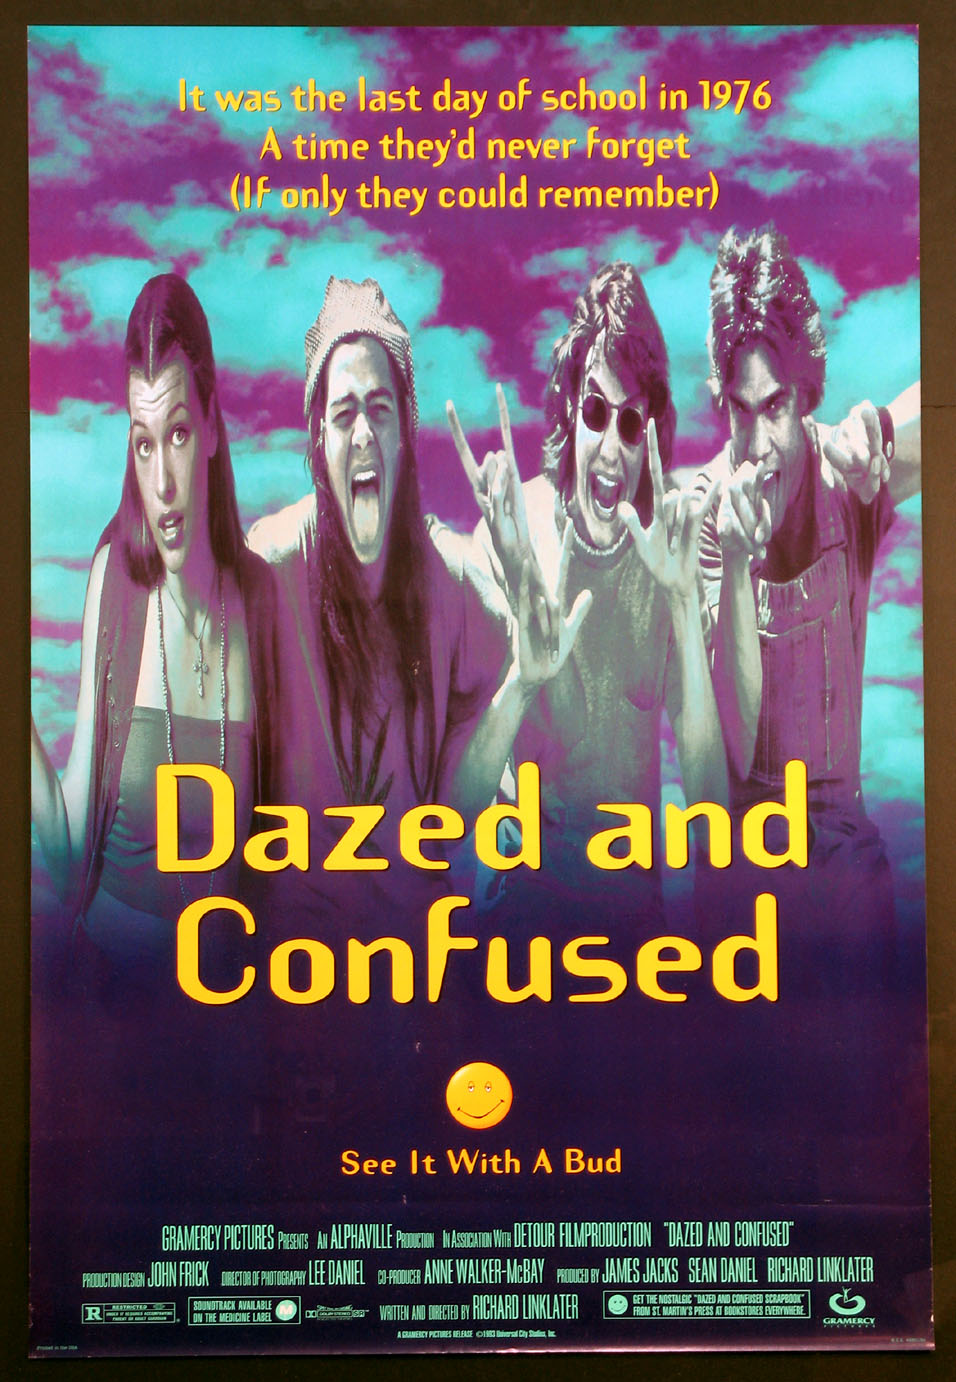 DAZED AND CONFUSED @ FilmPosters.com